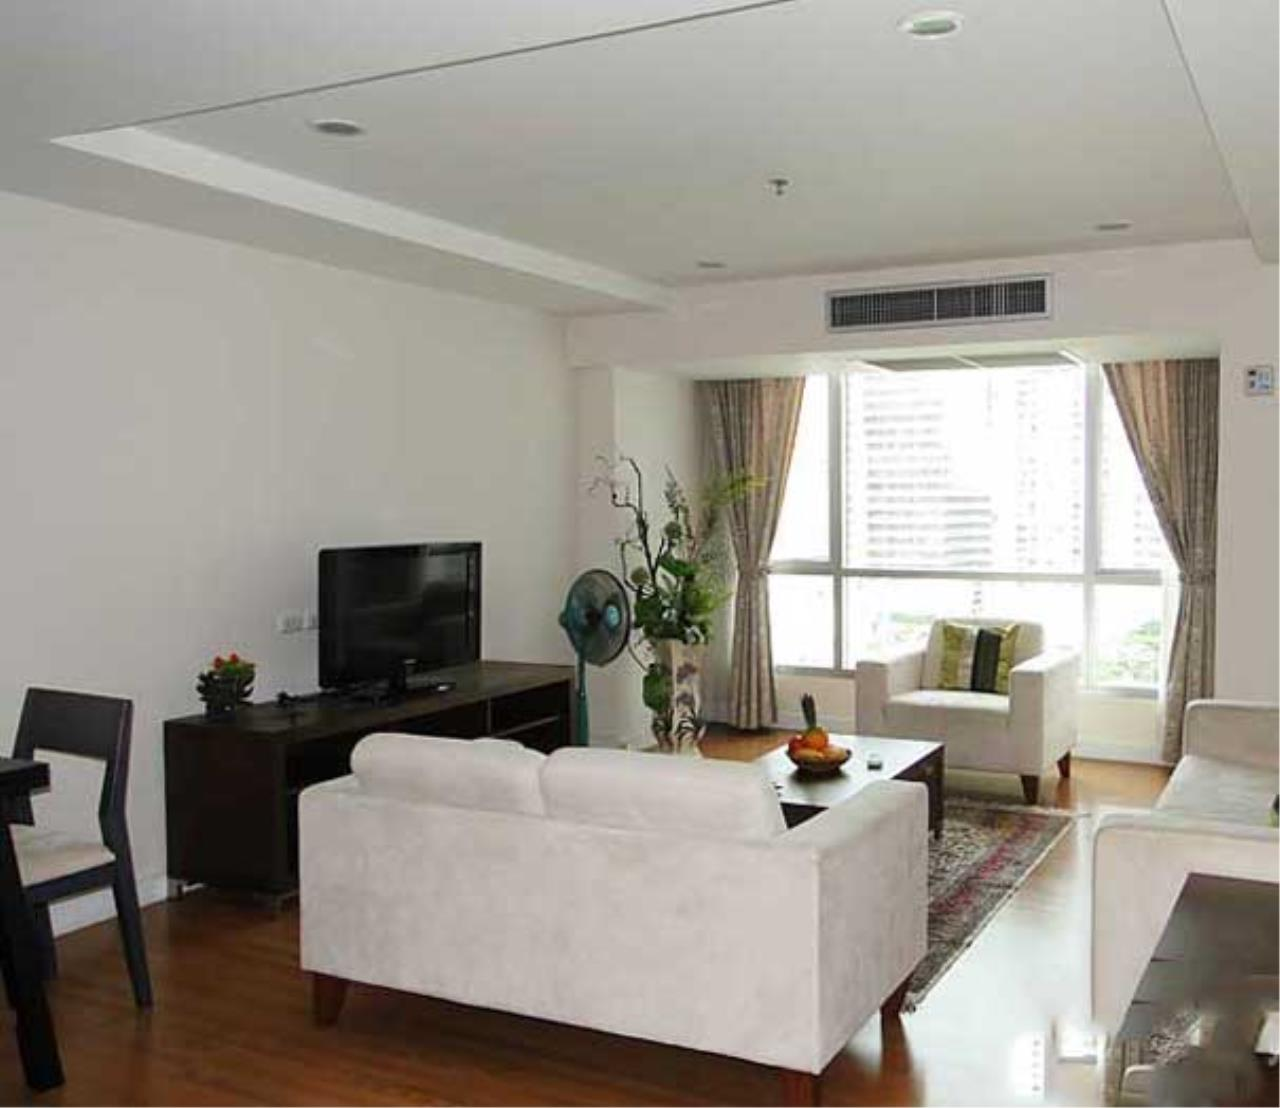 Quality Life Property Agency's Condo 1 Bedroom For Rent At The Trendy Condominium , Many Units Available Here 2